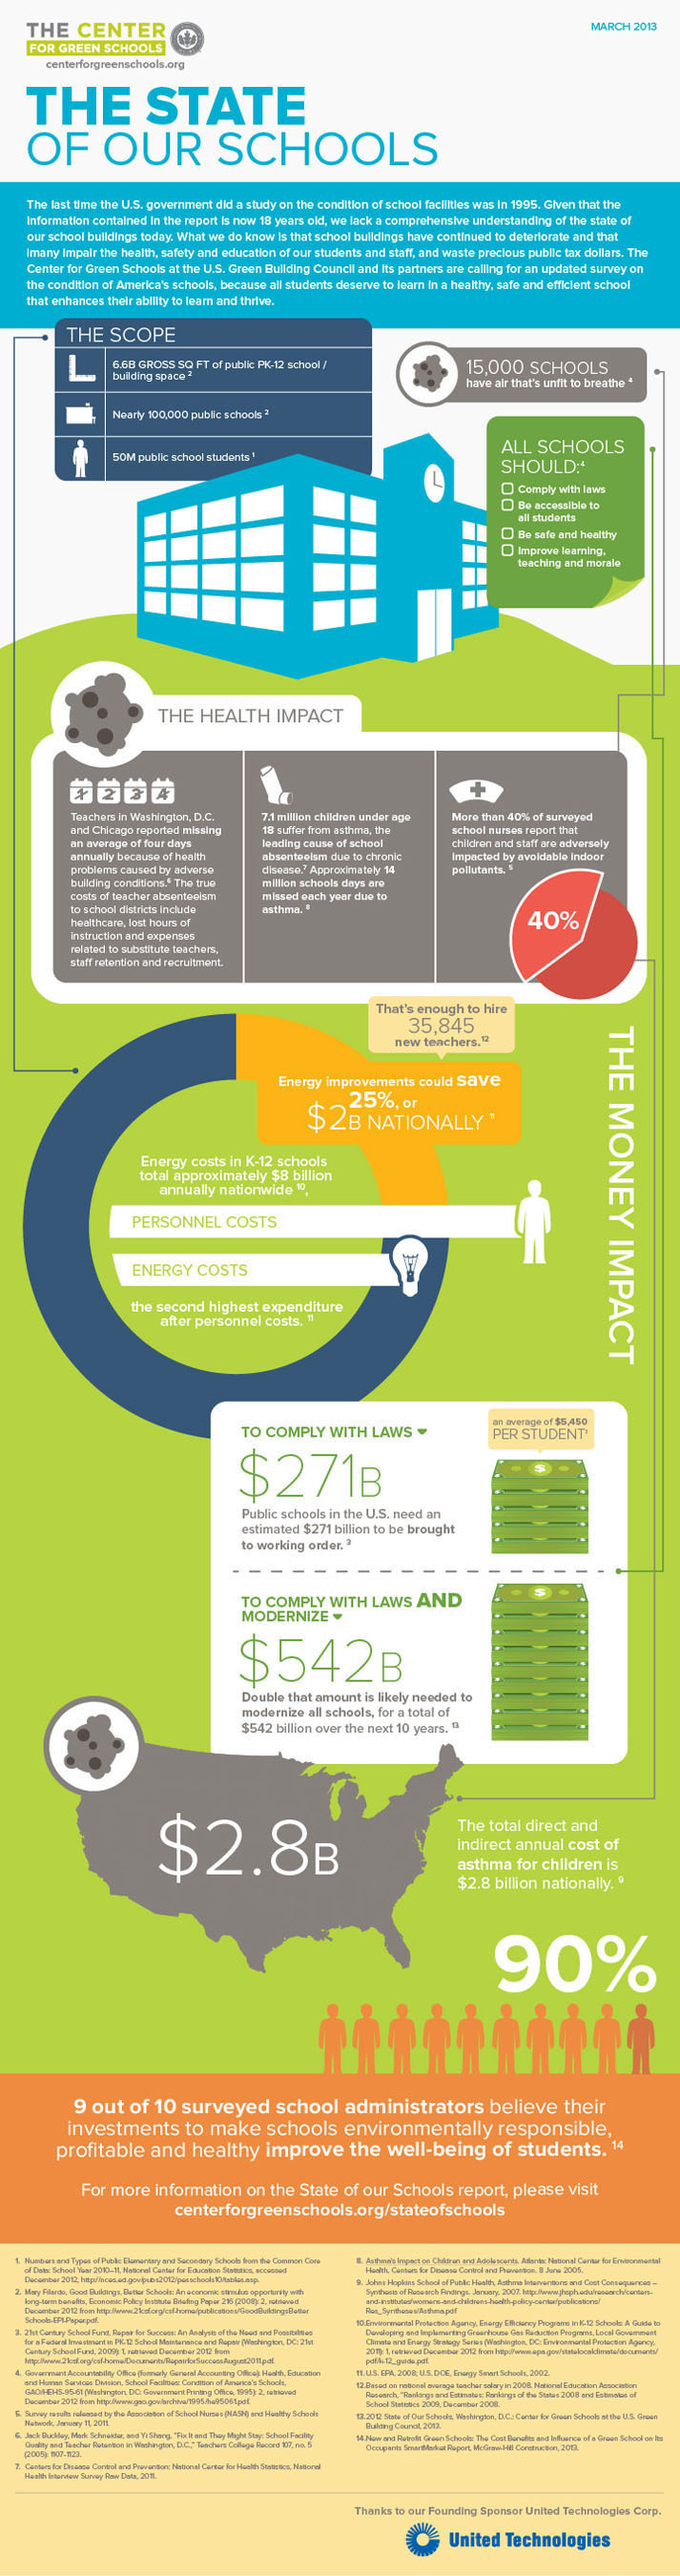 '2013 State of Our Schools' Report from the Center for Green Schools at USGBC Calls for Immediate